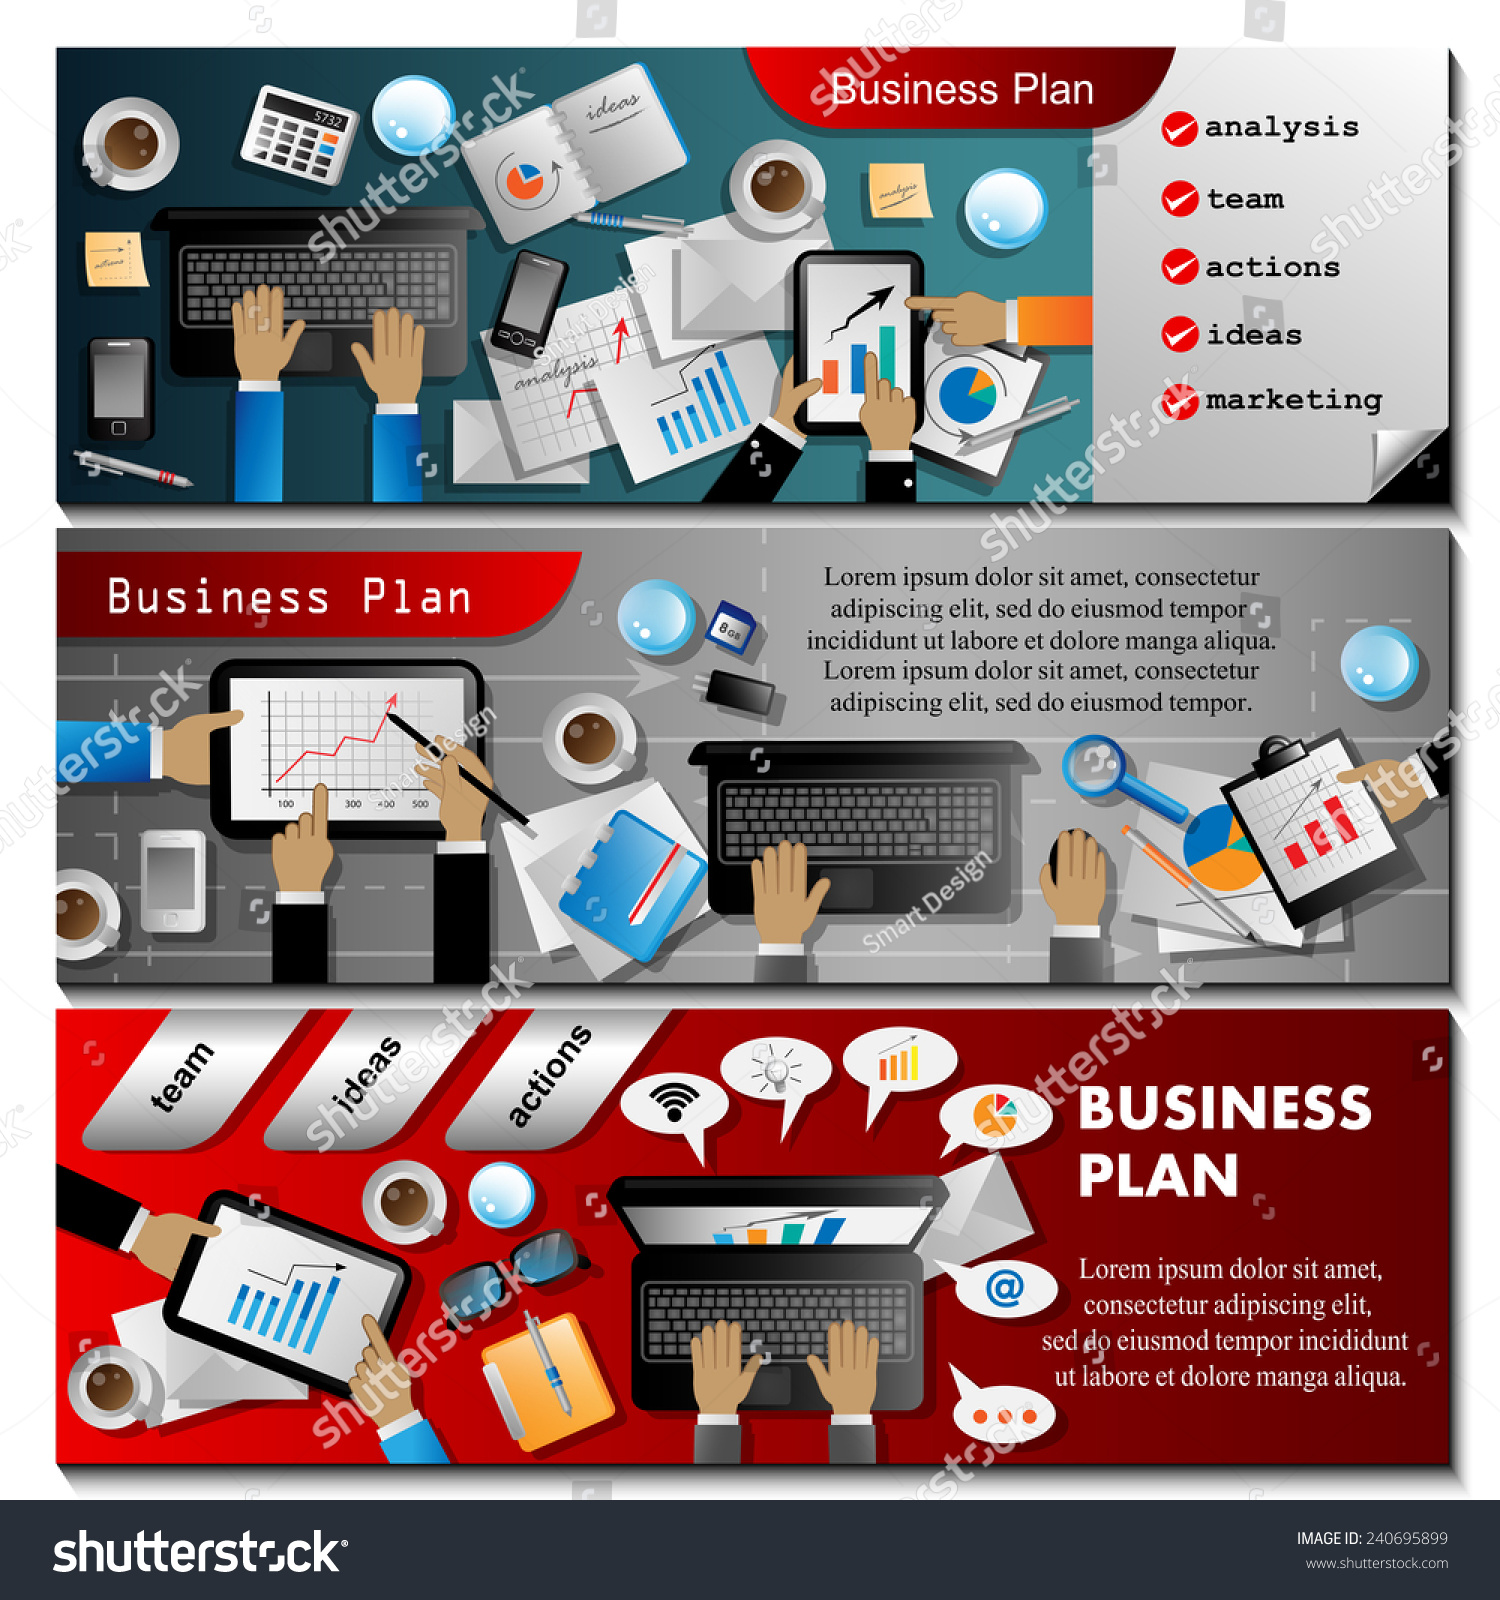 Business plan flyer template vector illustration stock - Business plan for web design company ...